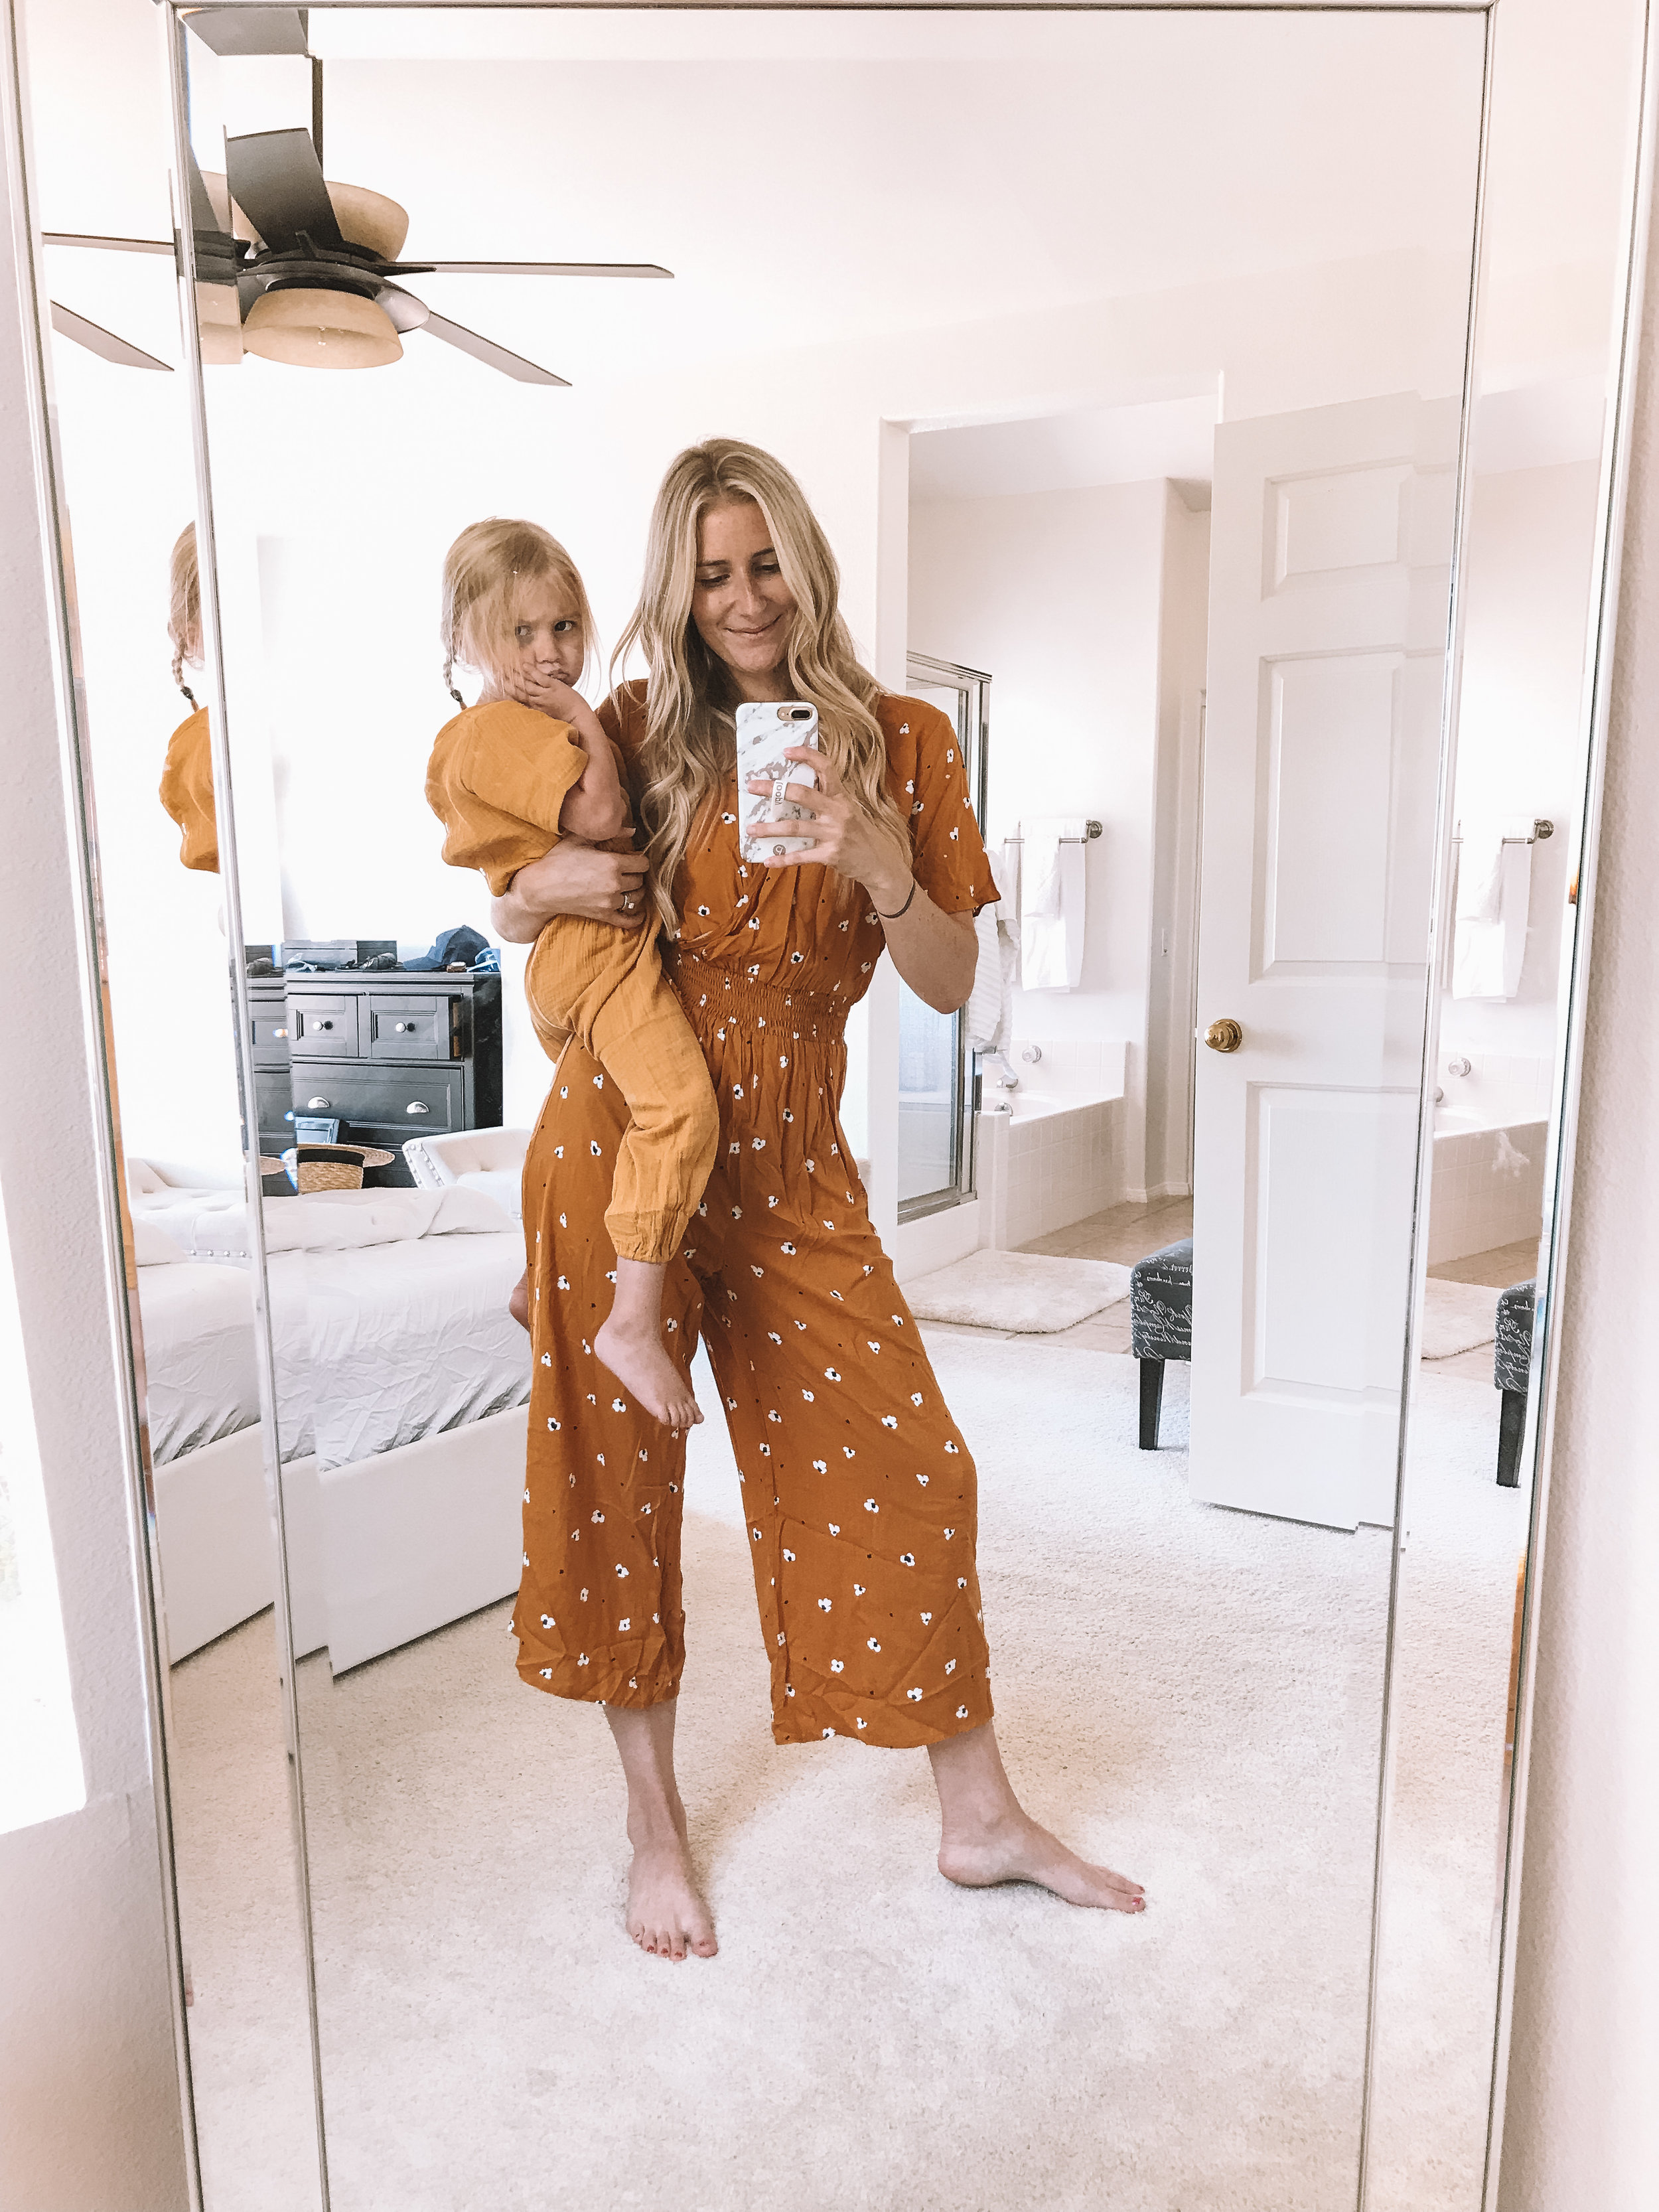 Mommy and Me Clothes - Nursing Friendly Fashion Clothes - The Overwhelmed Mommy Blogger